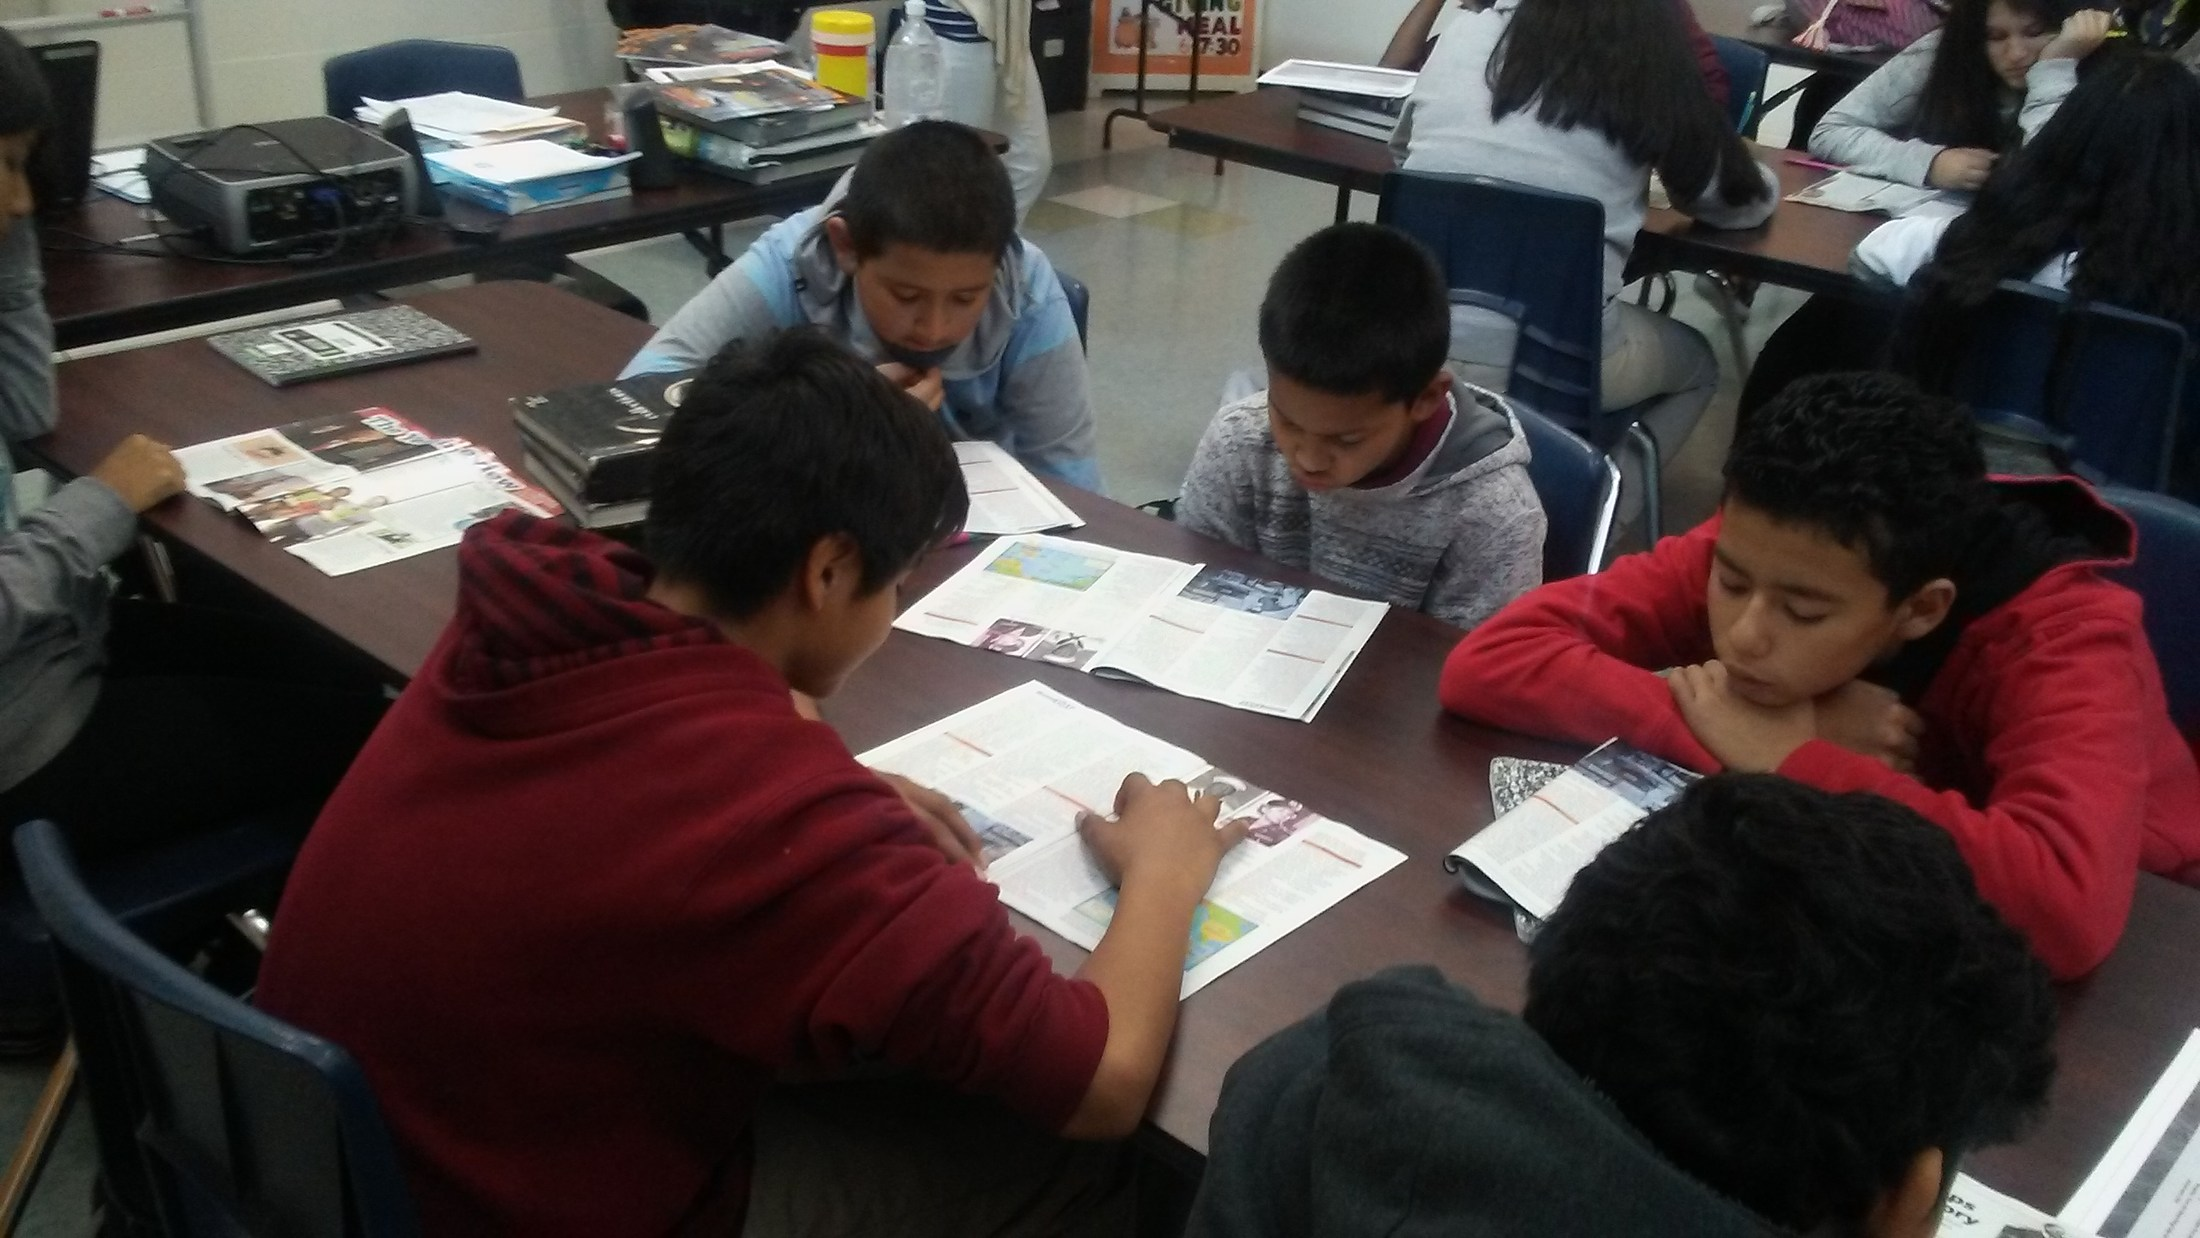 teaching high school students critical thinking skills